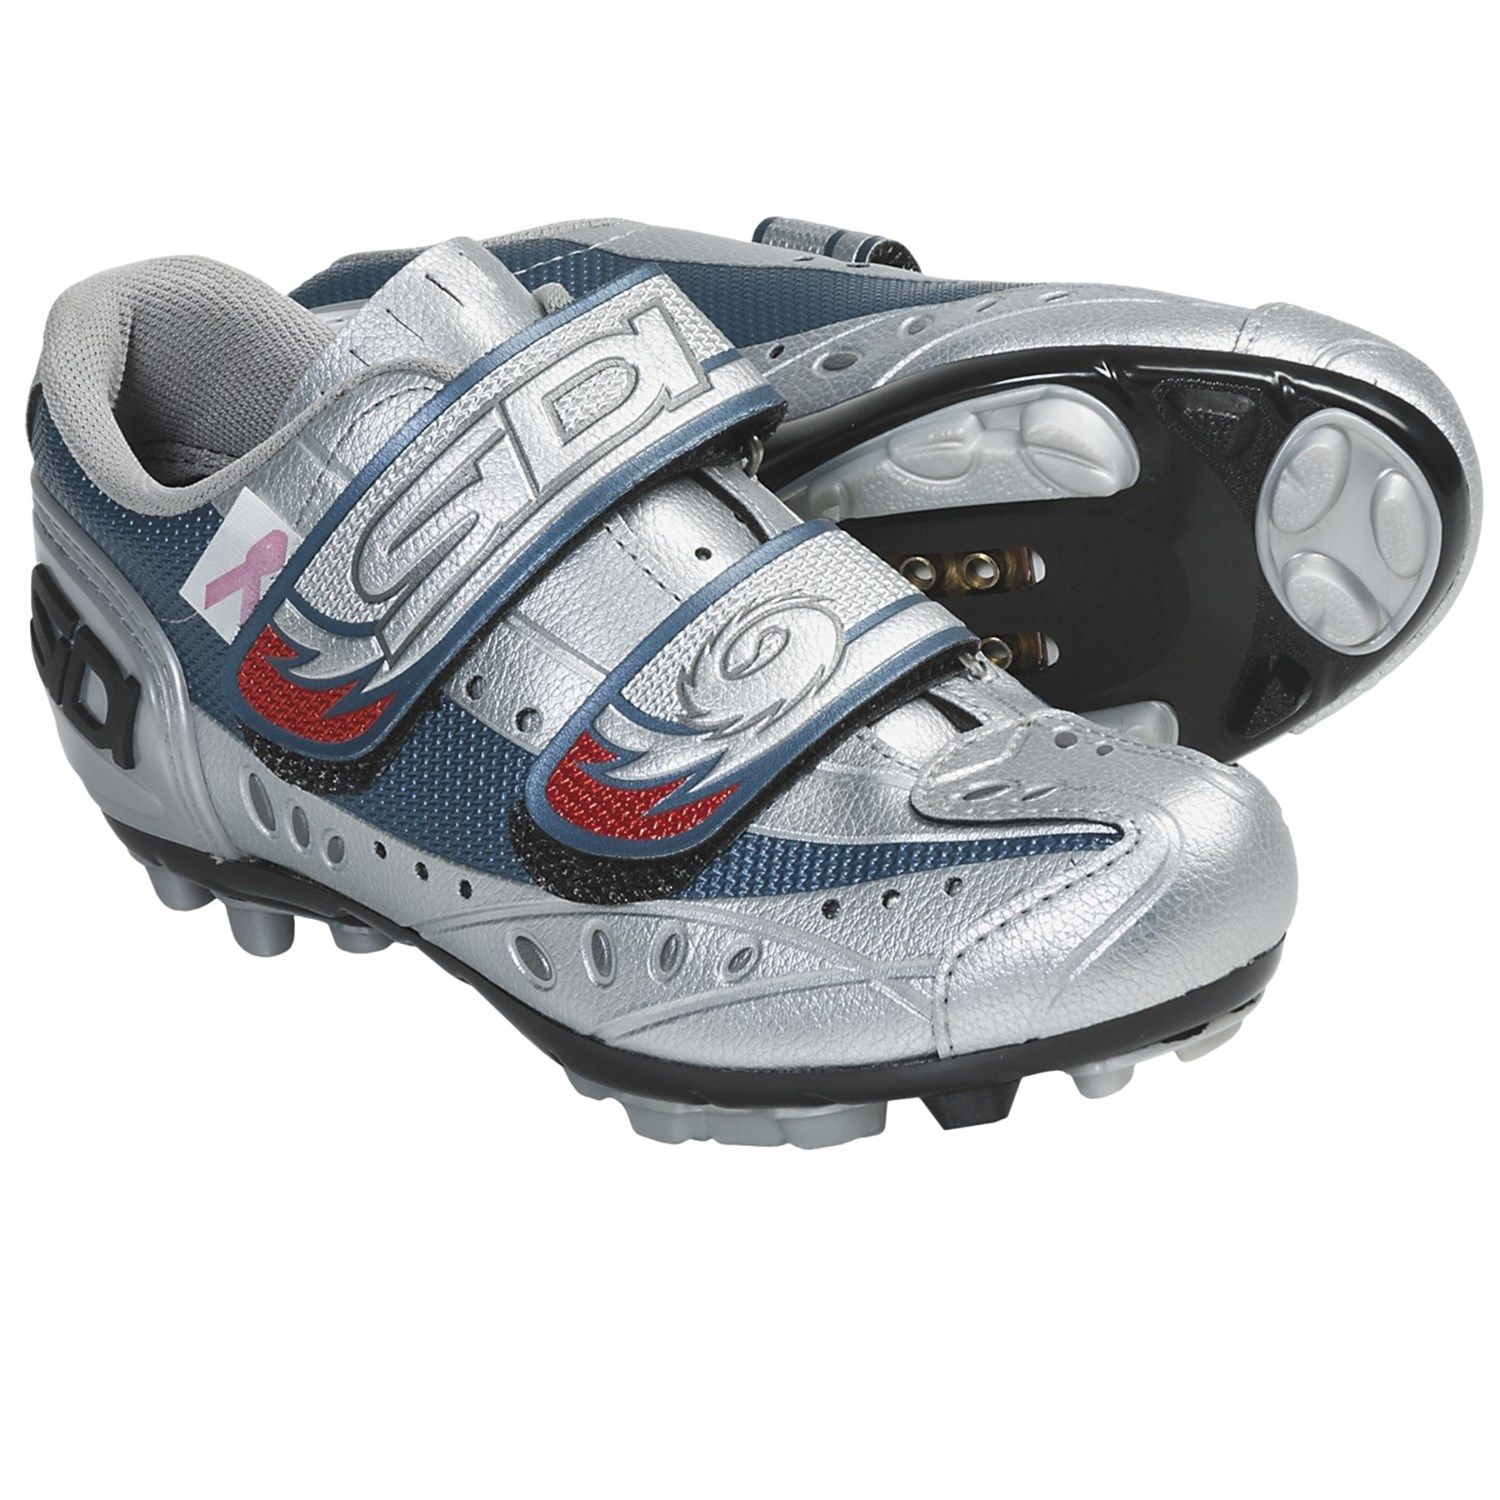 Online clothing stores – Sidi womens shoes